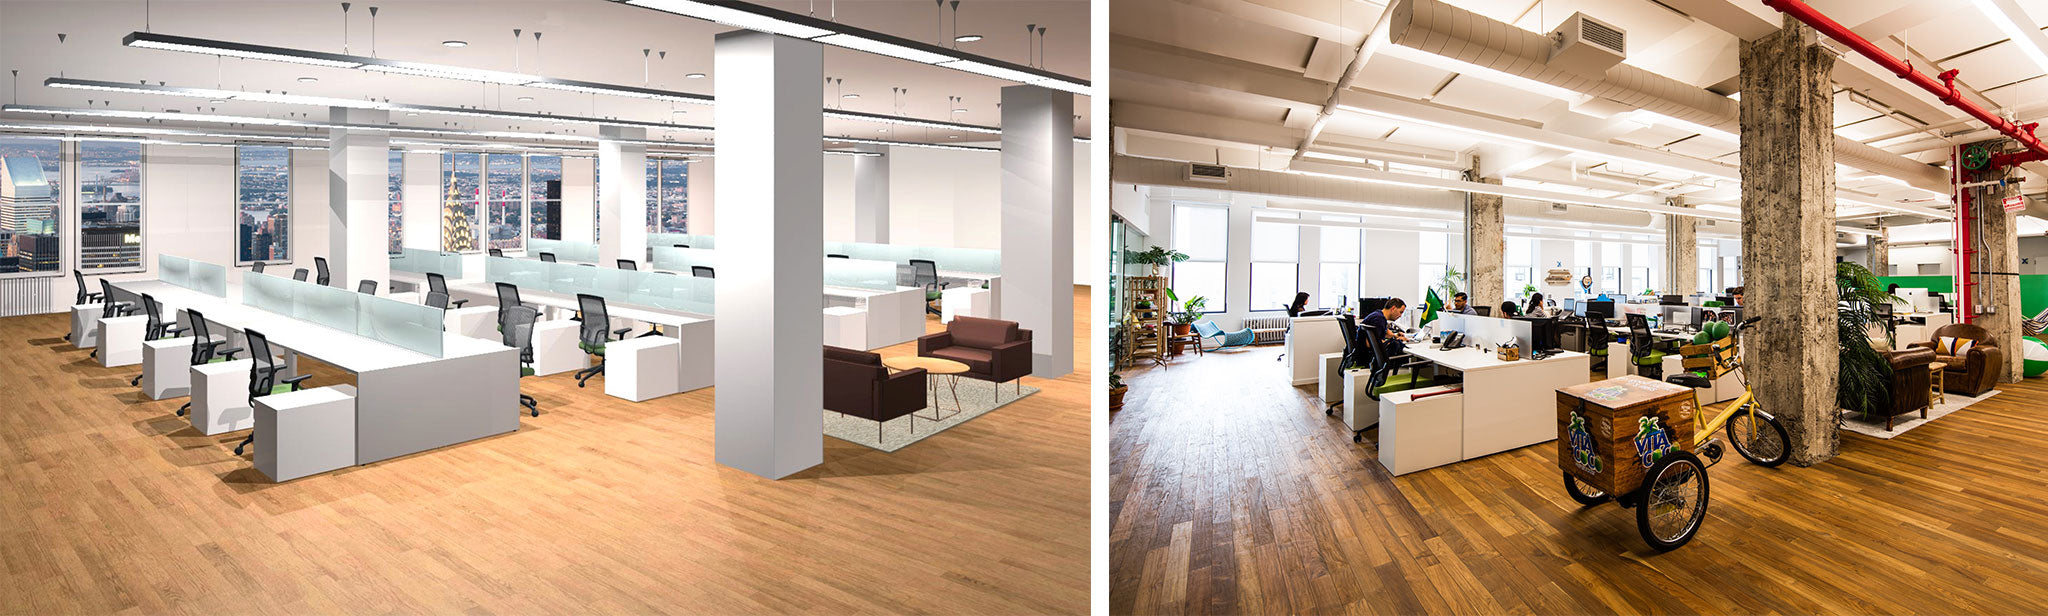 OFH 3D Rendering of Vita Coco's Office + the Furnished Office